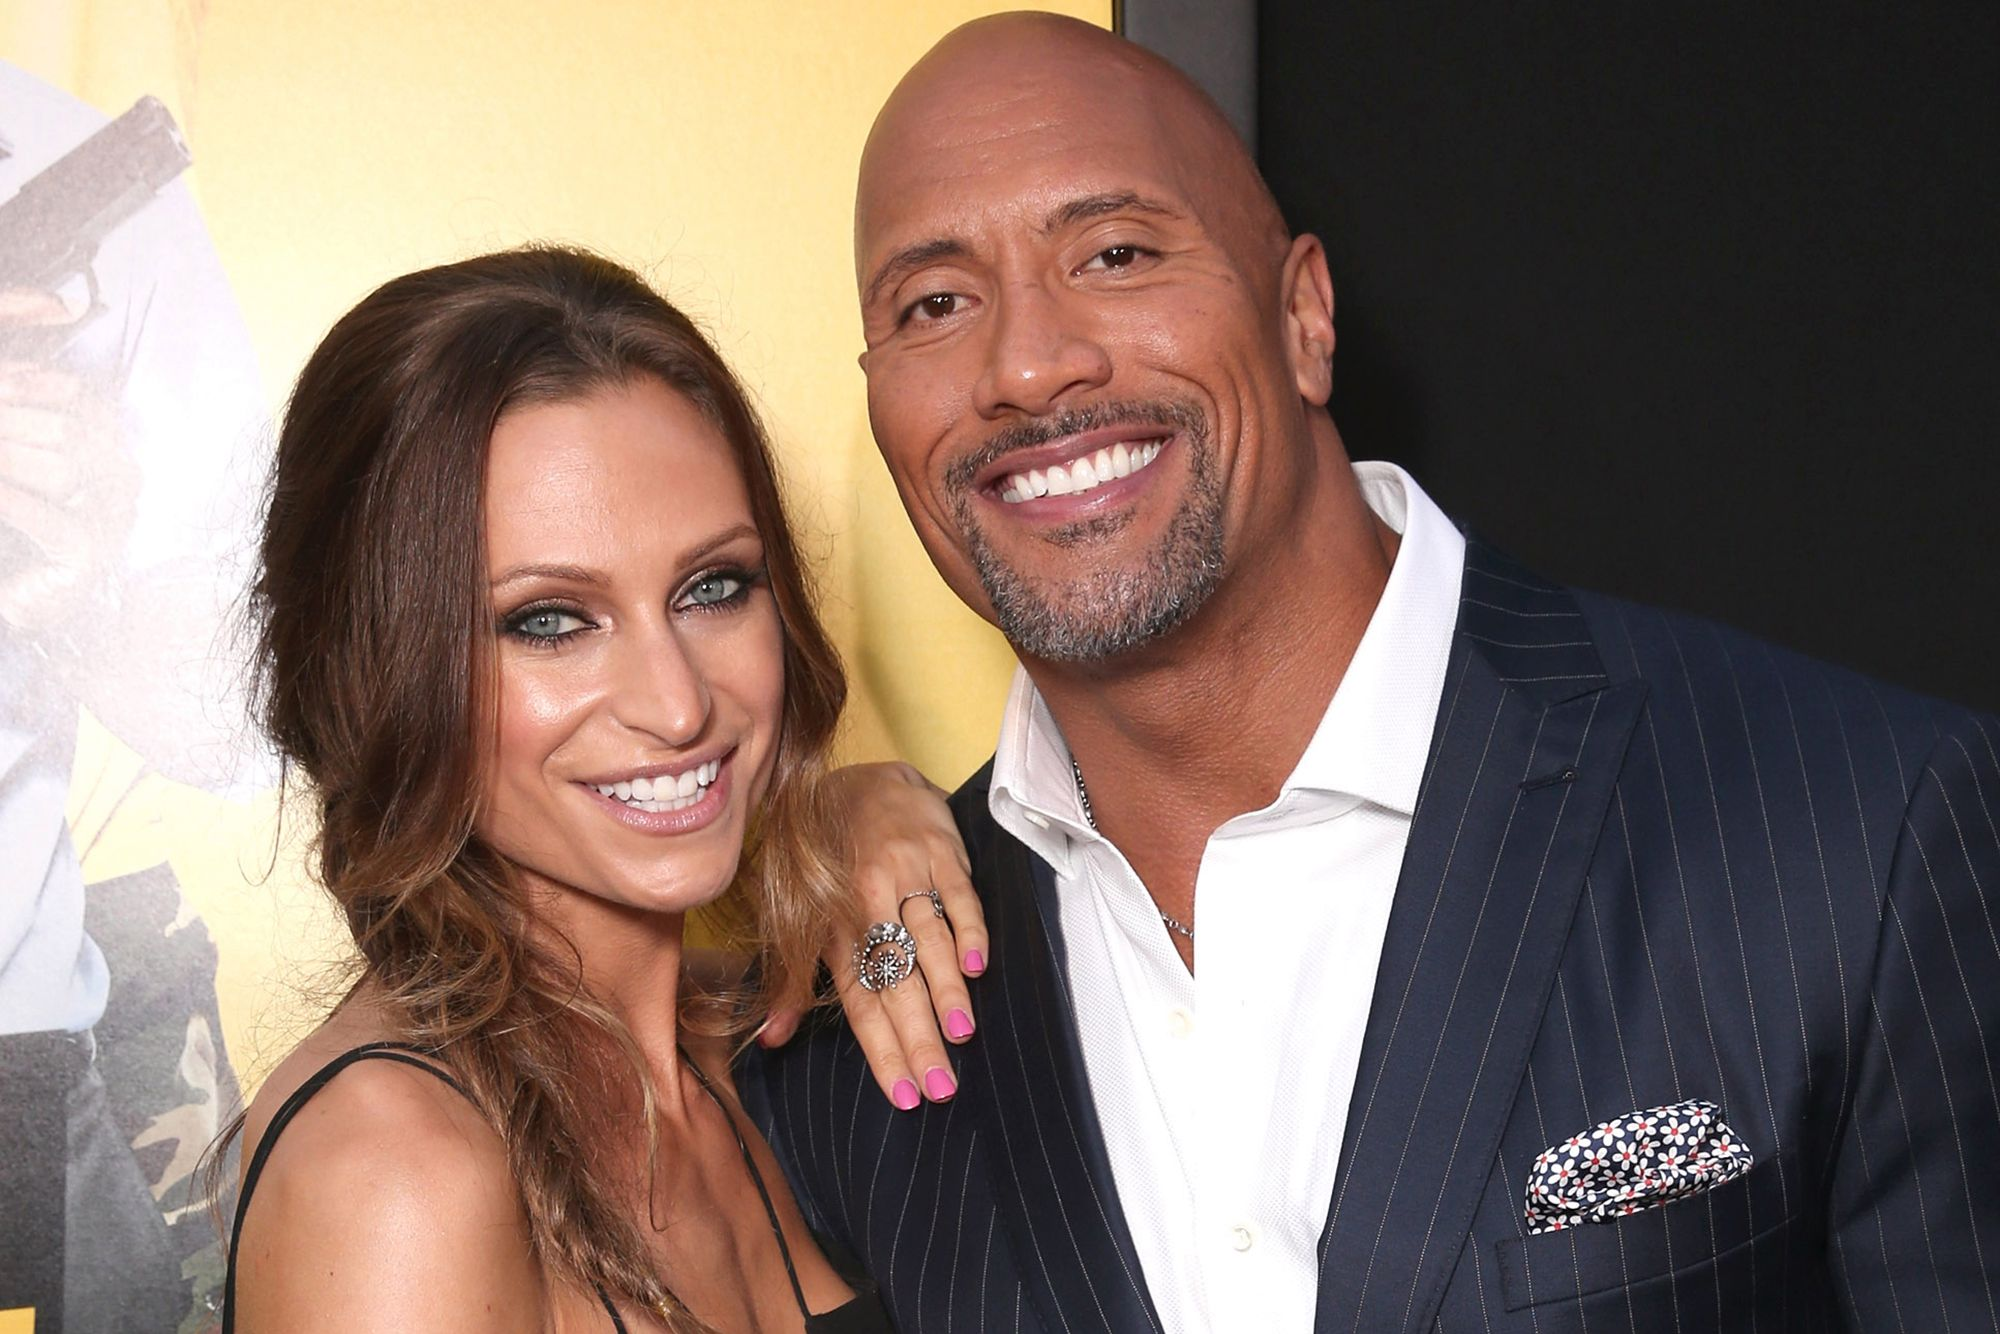 dwayne-the-rock-johnson-pays-sweet-tribute-to-wife-lauren-hashian-on-her-birthday